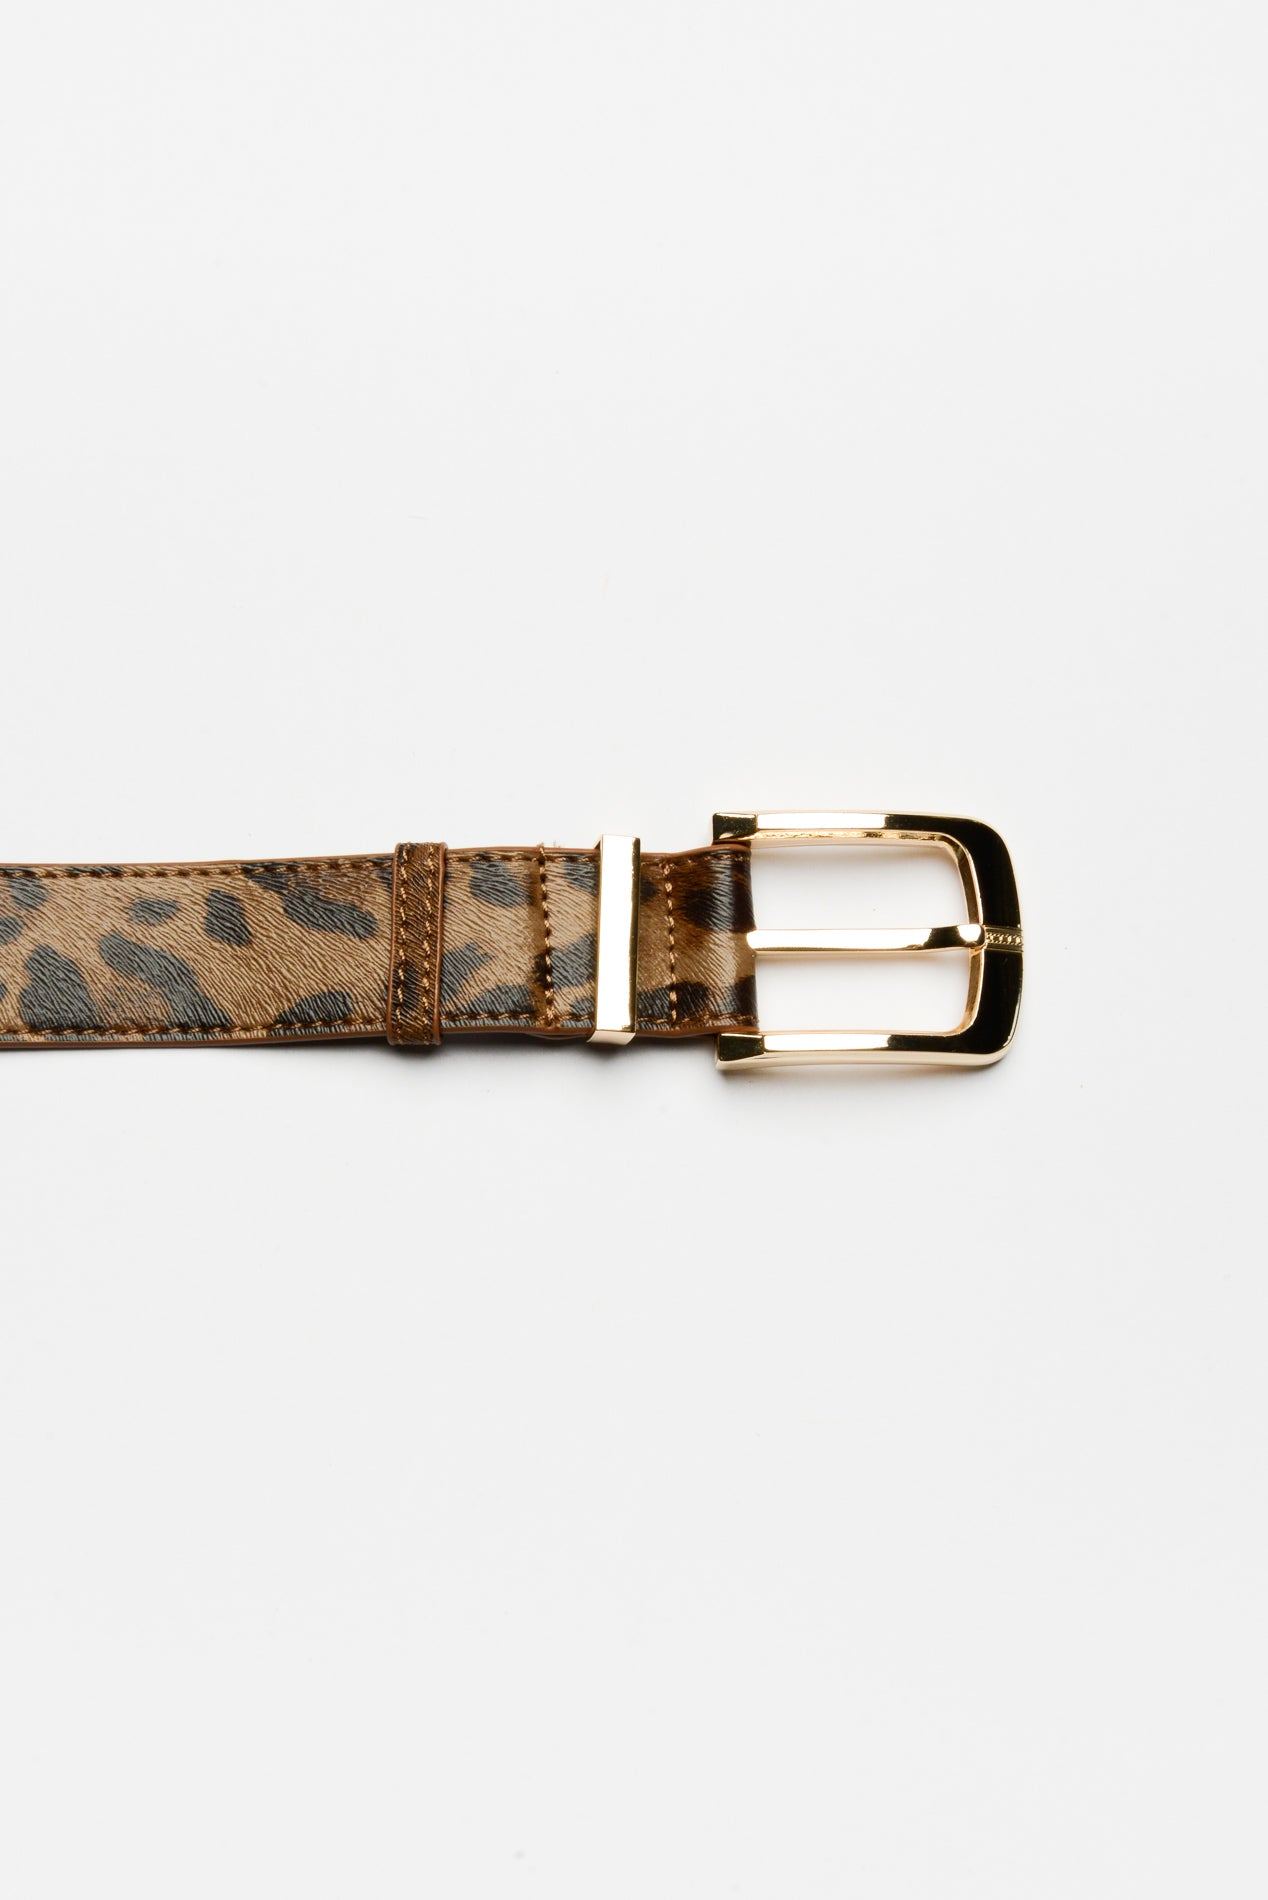 Gale Leopard Print Belt - Blue Bungalow